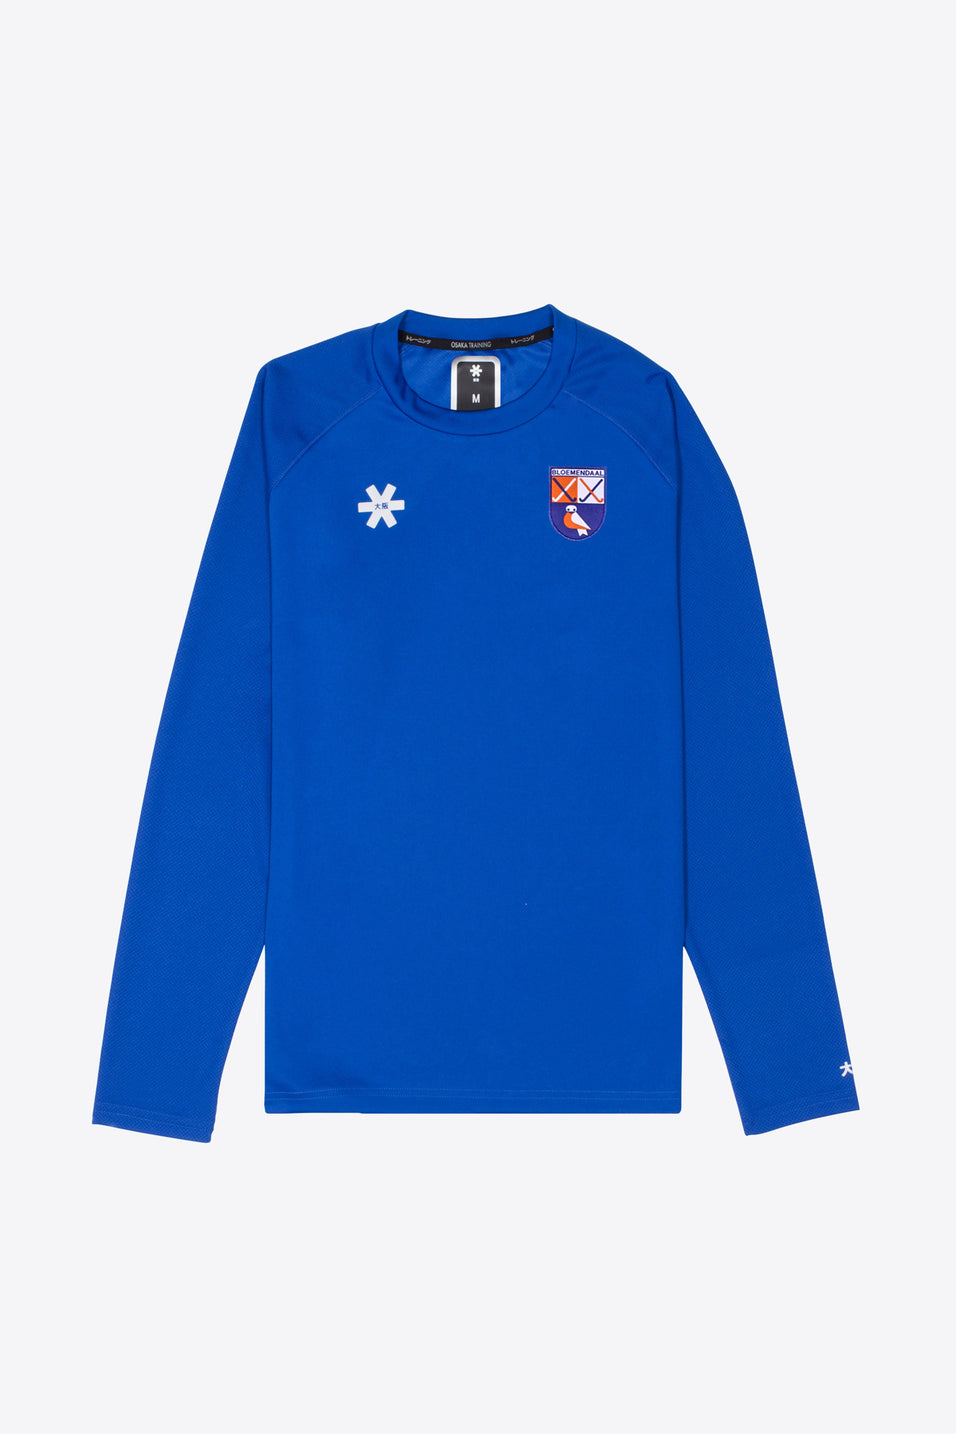 HC Bloemendaal Keeper Shirt Long Sleeve - Royal Blue